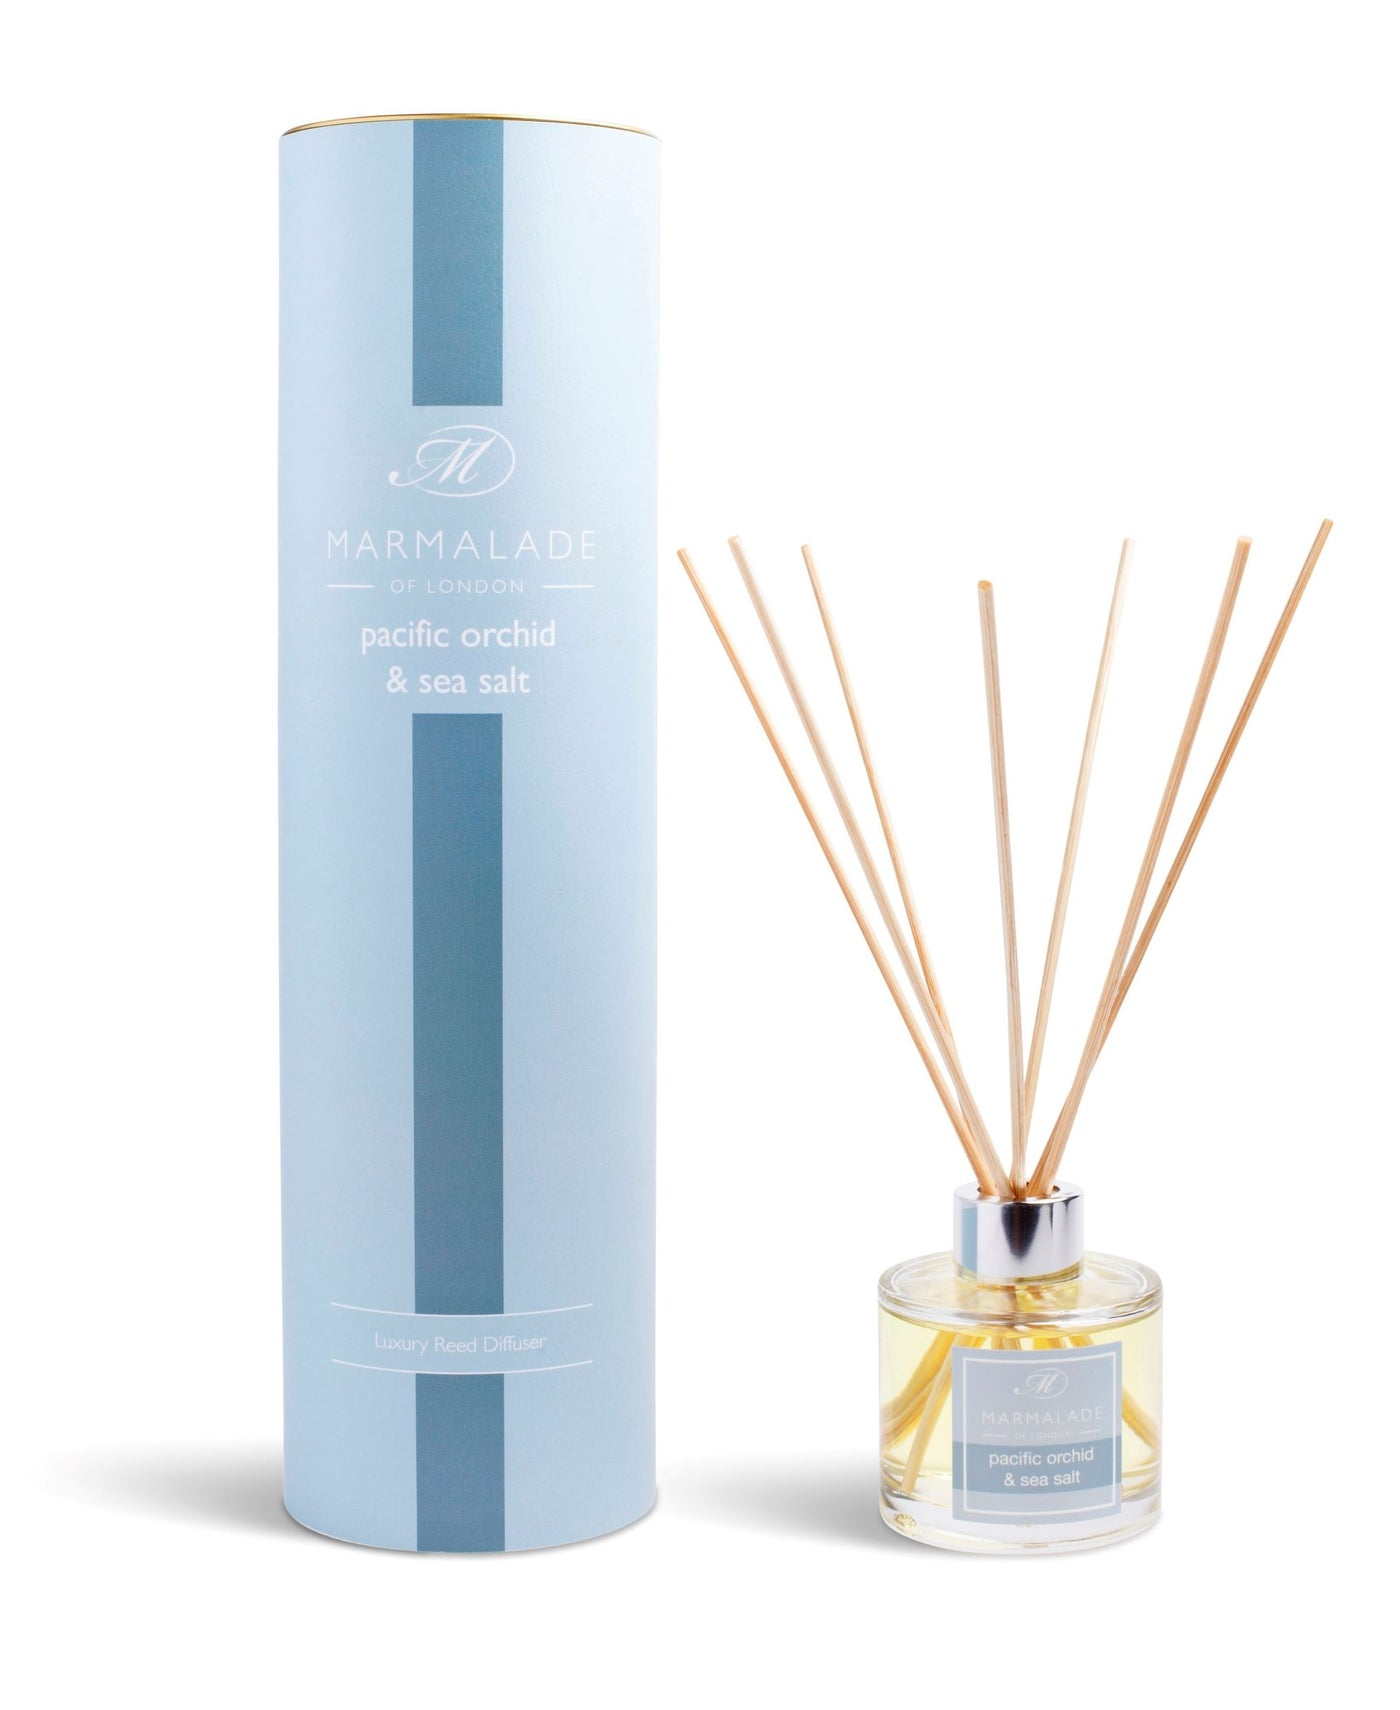 Marmalade of London Pacific Orchid & Sea Salt Diffuser